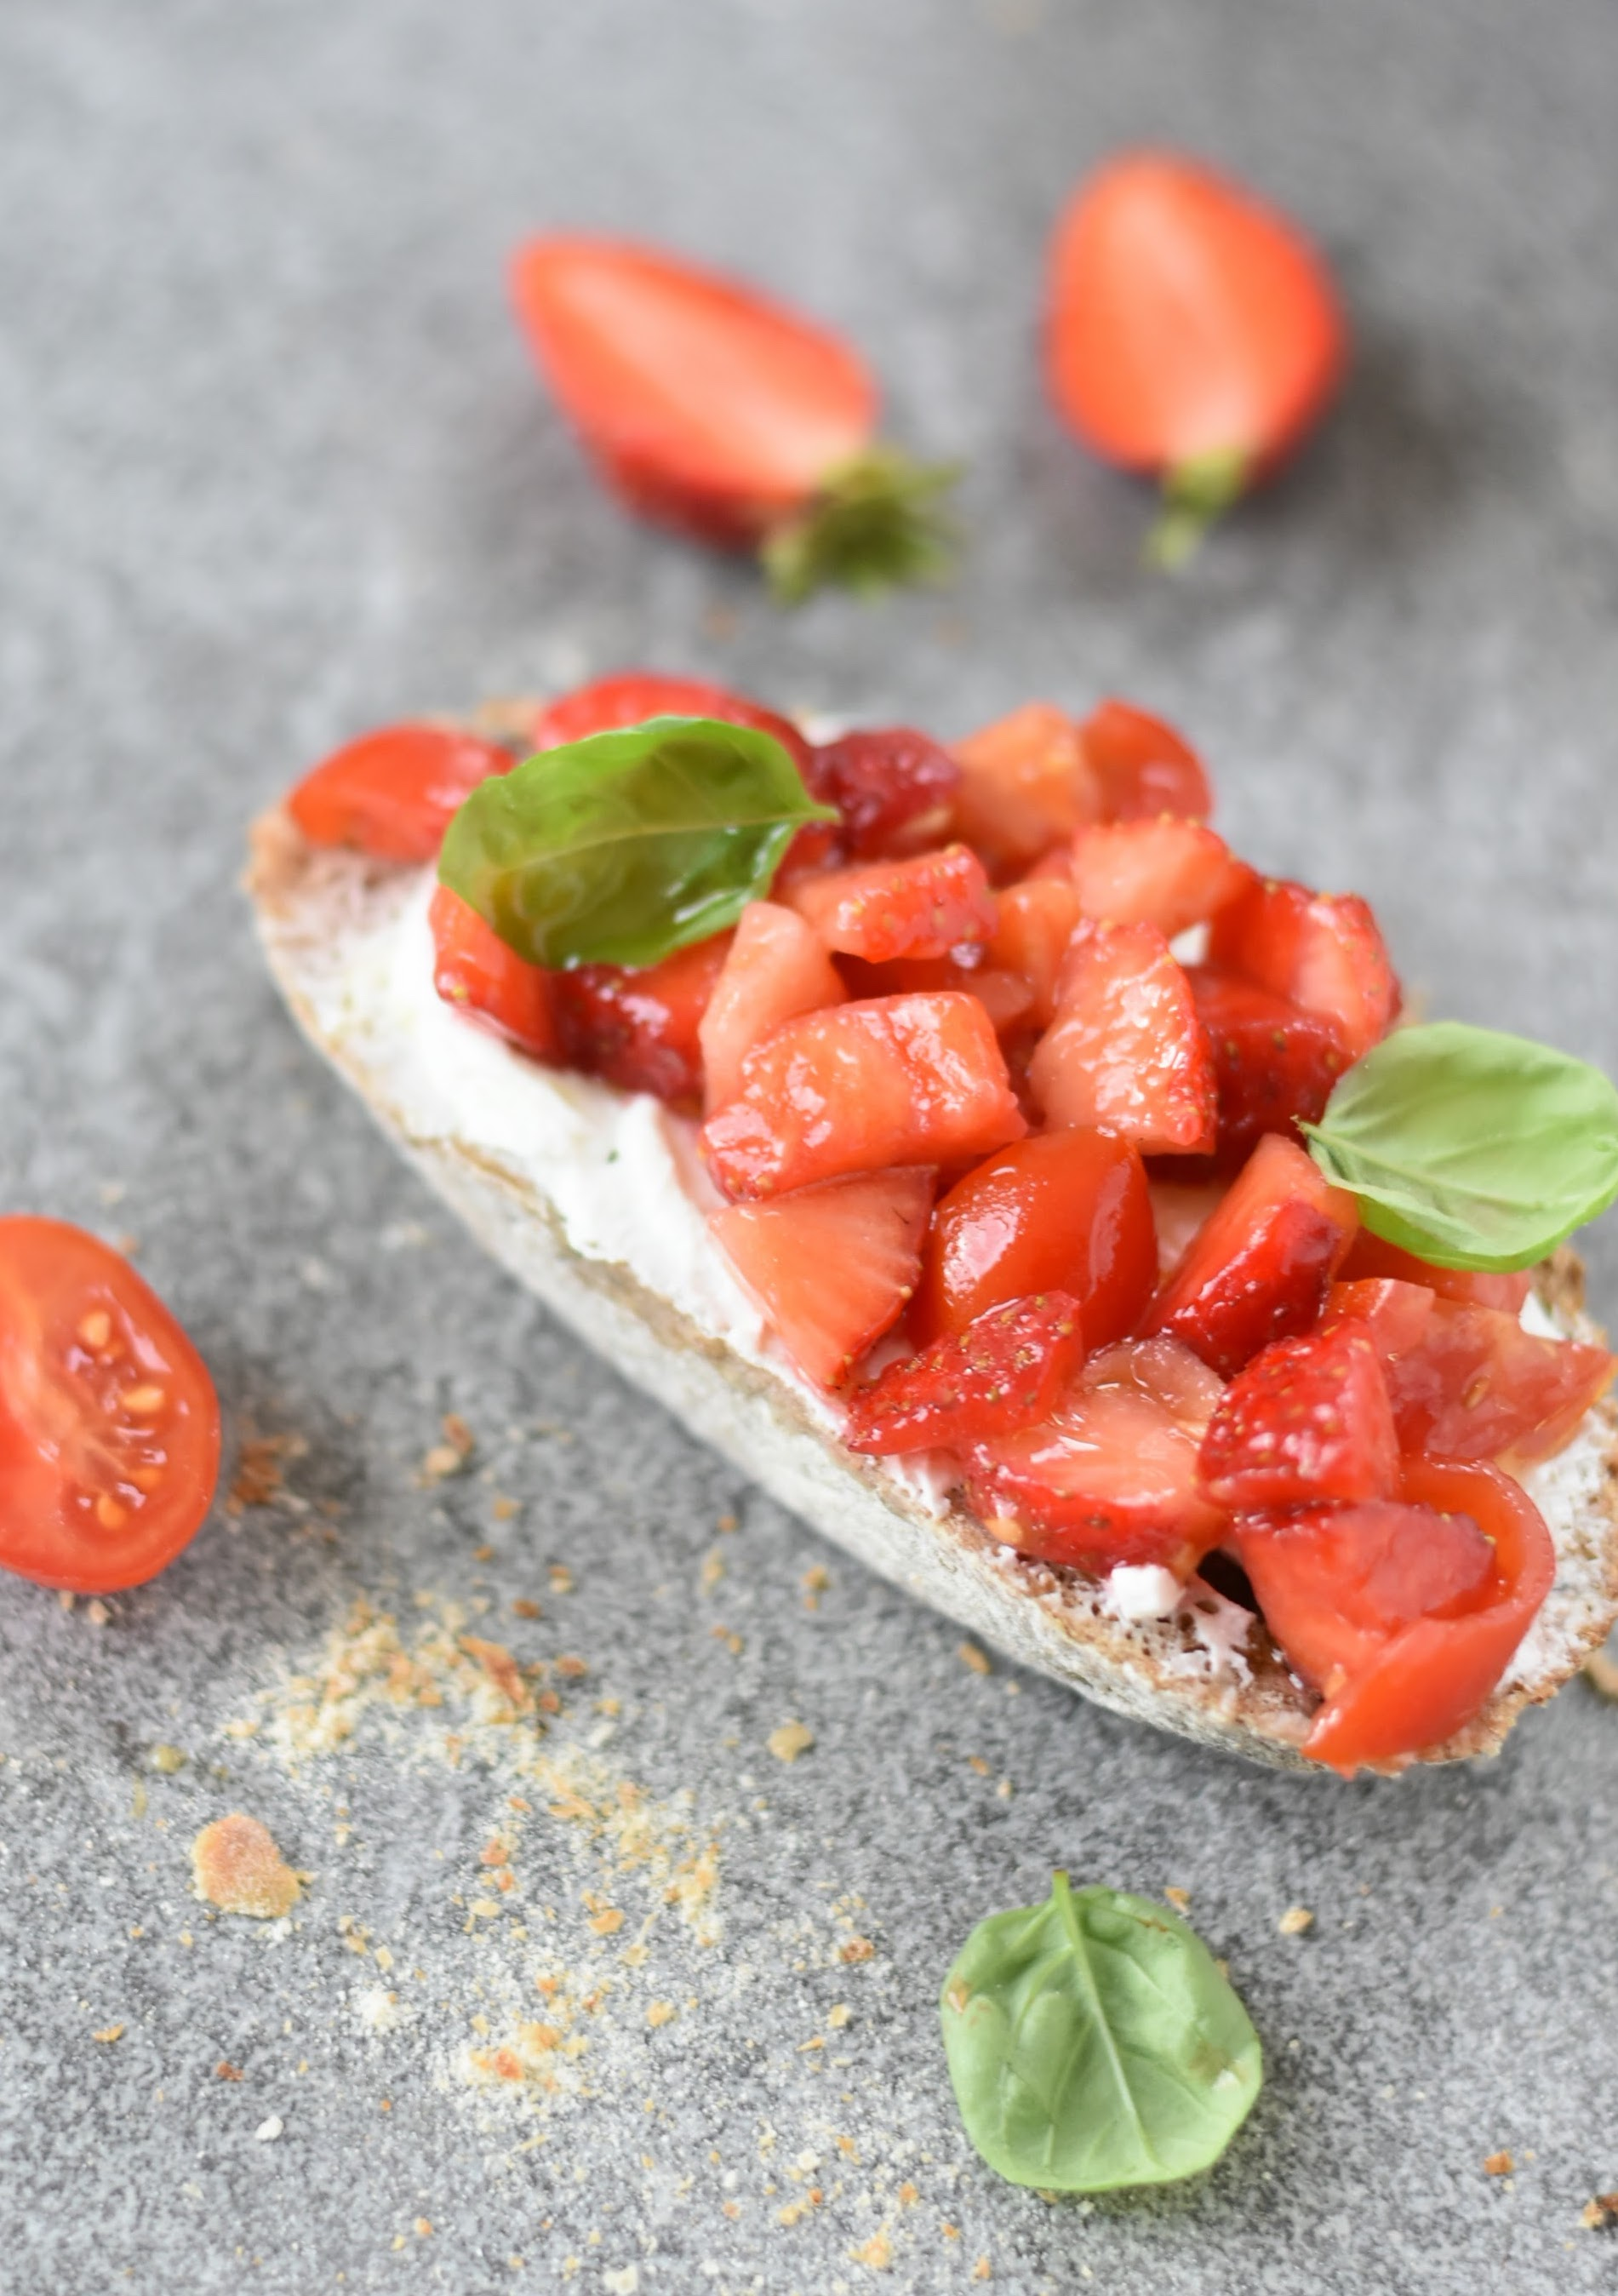 A Quirky Bruschetta with Strawberries and Tomatoes